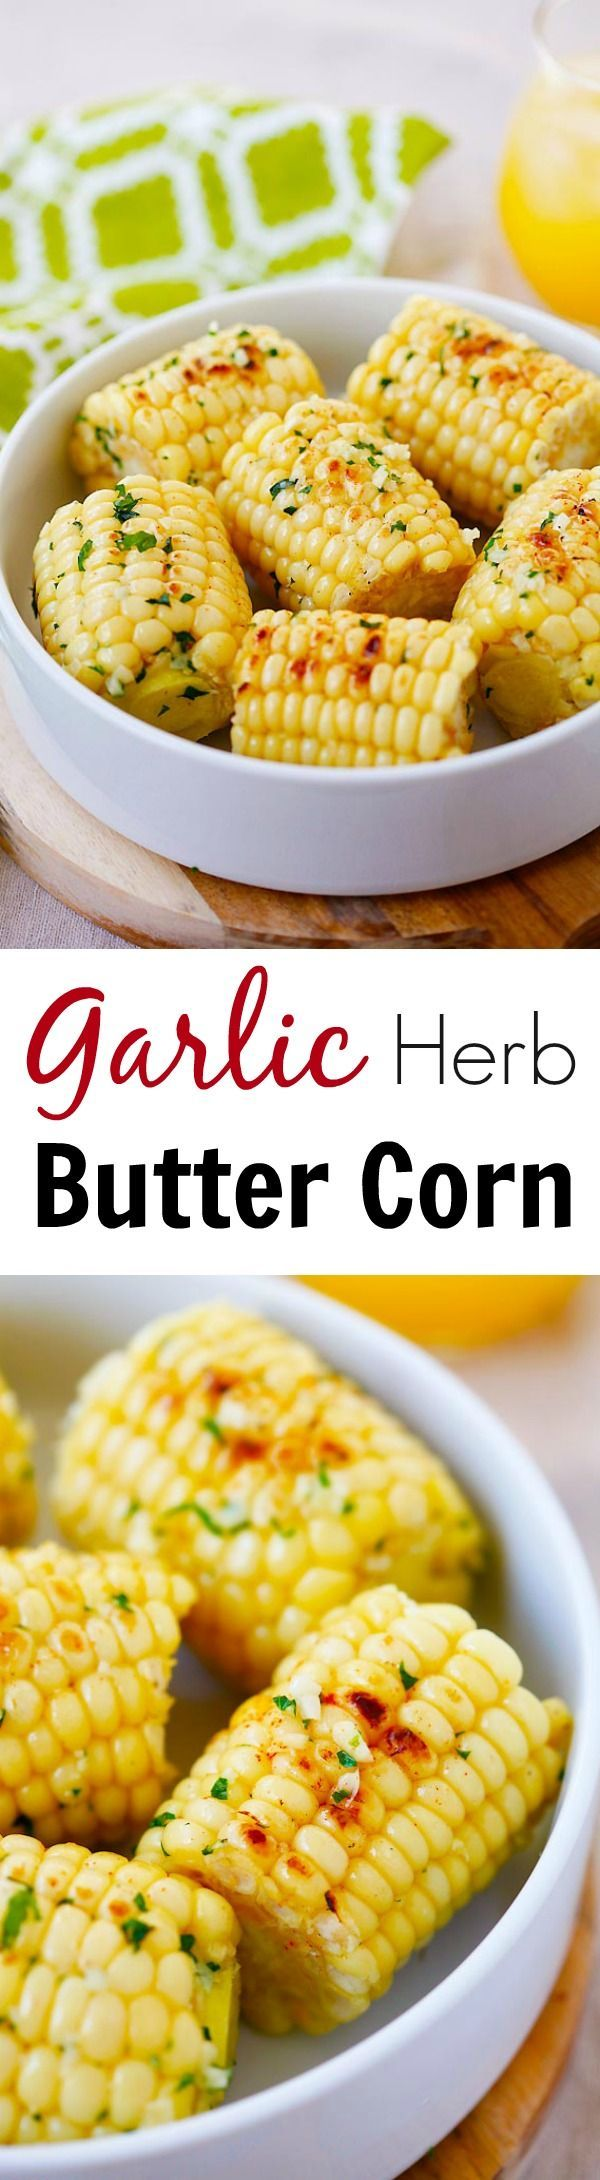 Garlic-Herb Butter Roasted Corn - corn with garlic herb butter and roasted on grill pan. The corn takes 15 mins to make and SO good!!